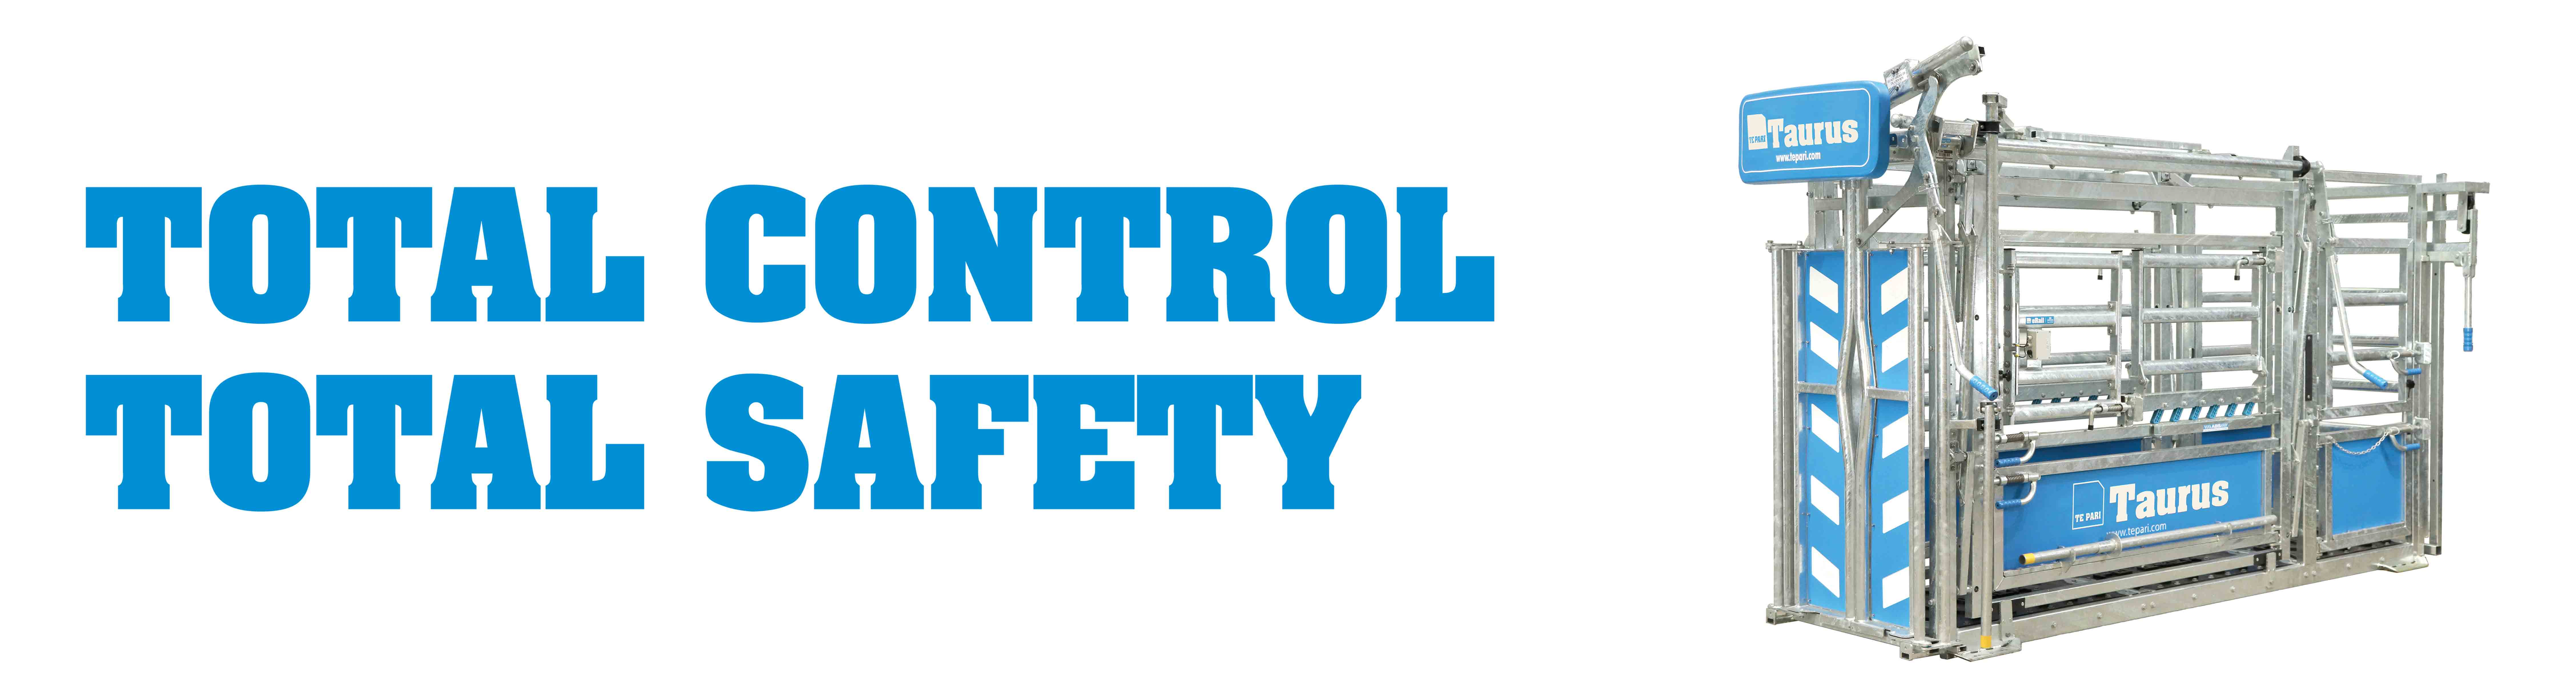 total control & total safety te pari cattle crushes